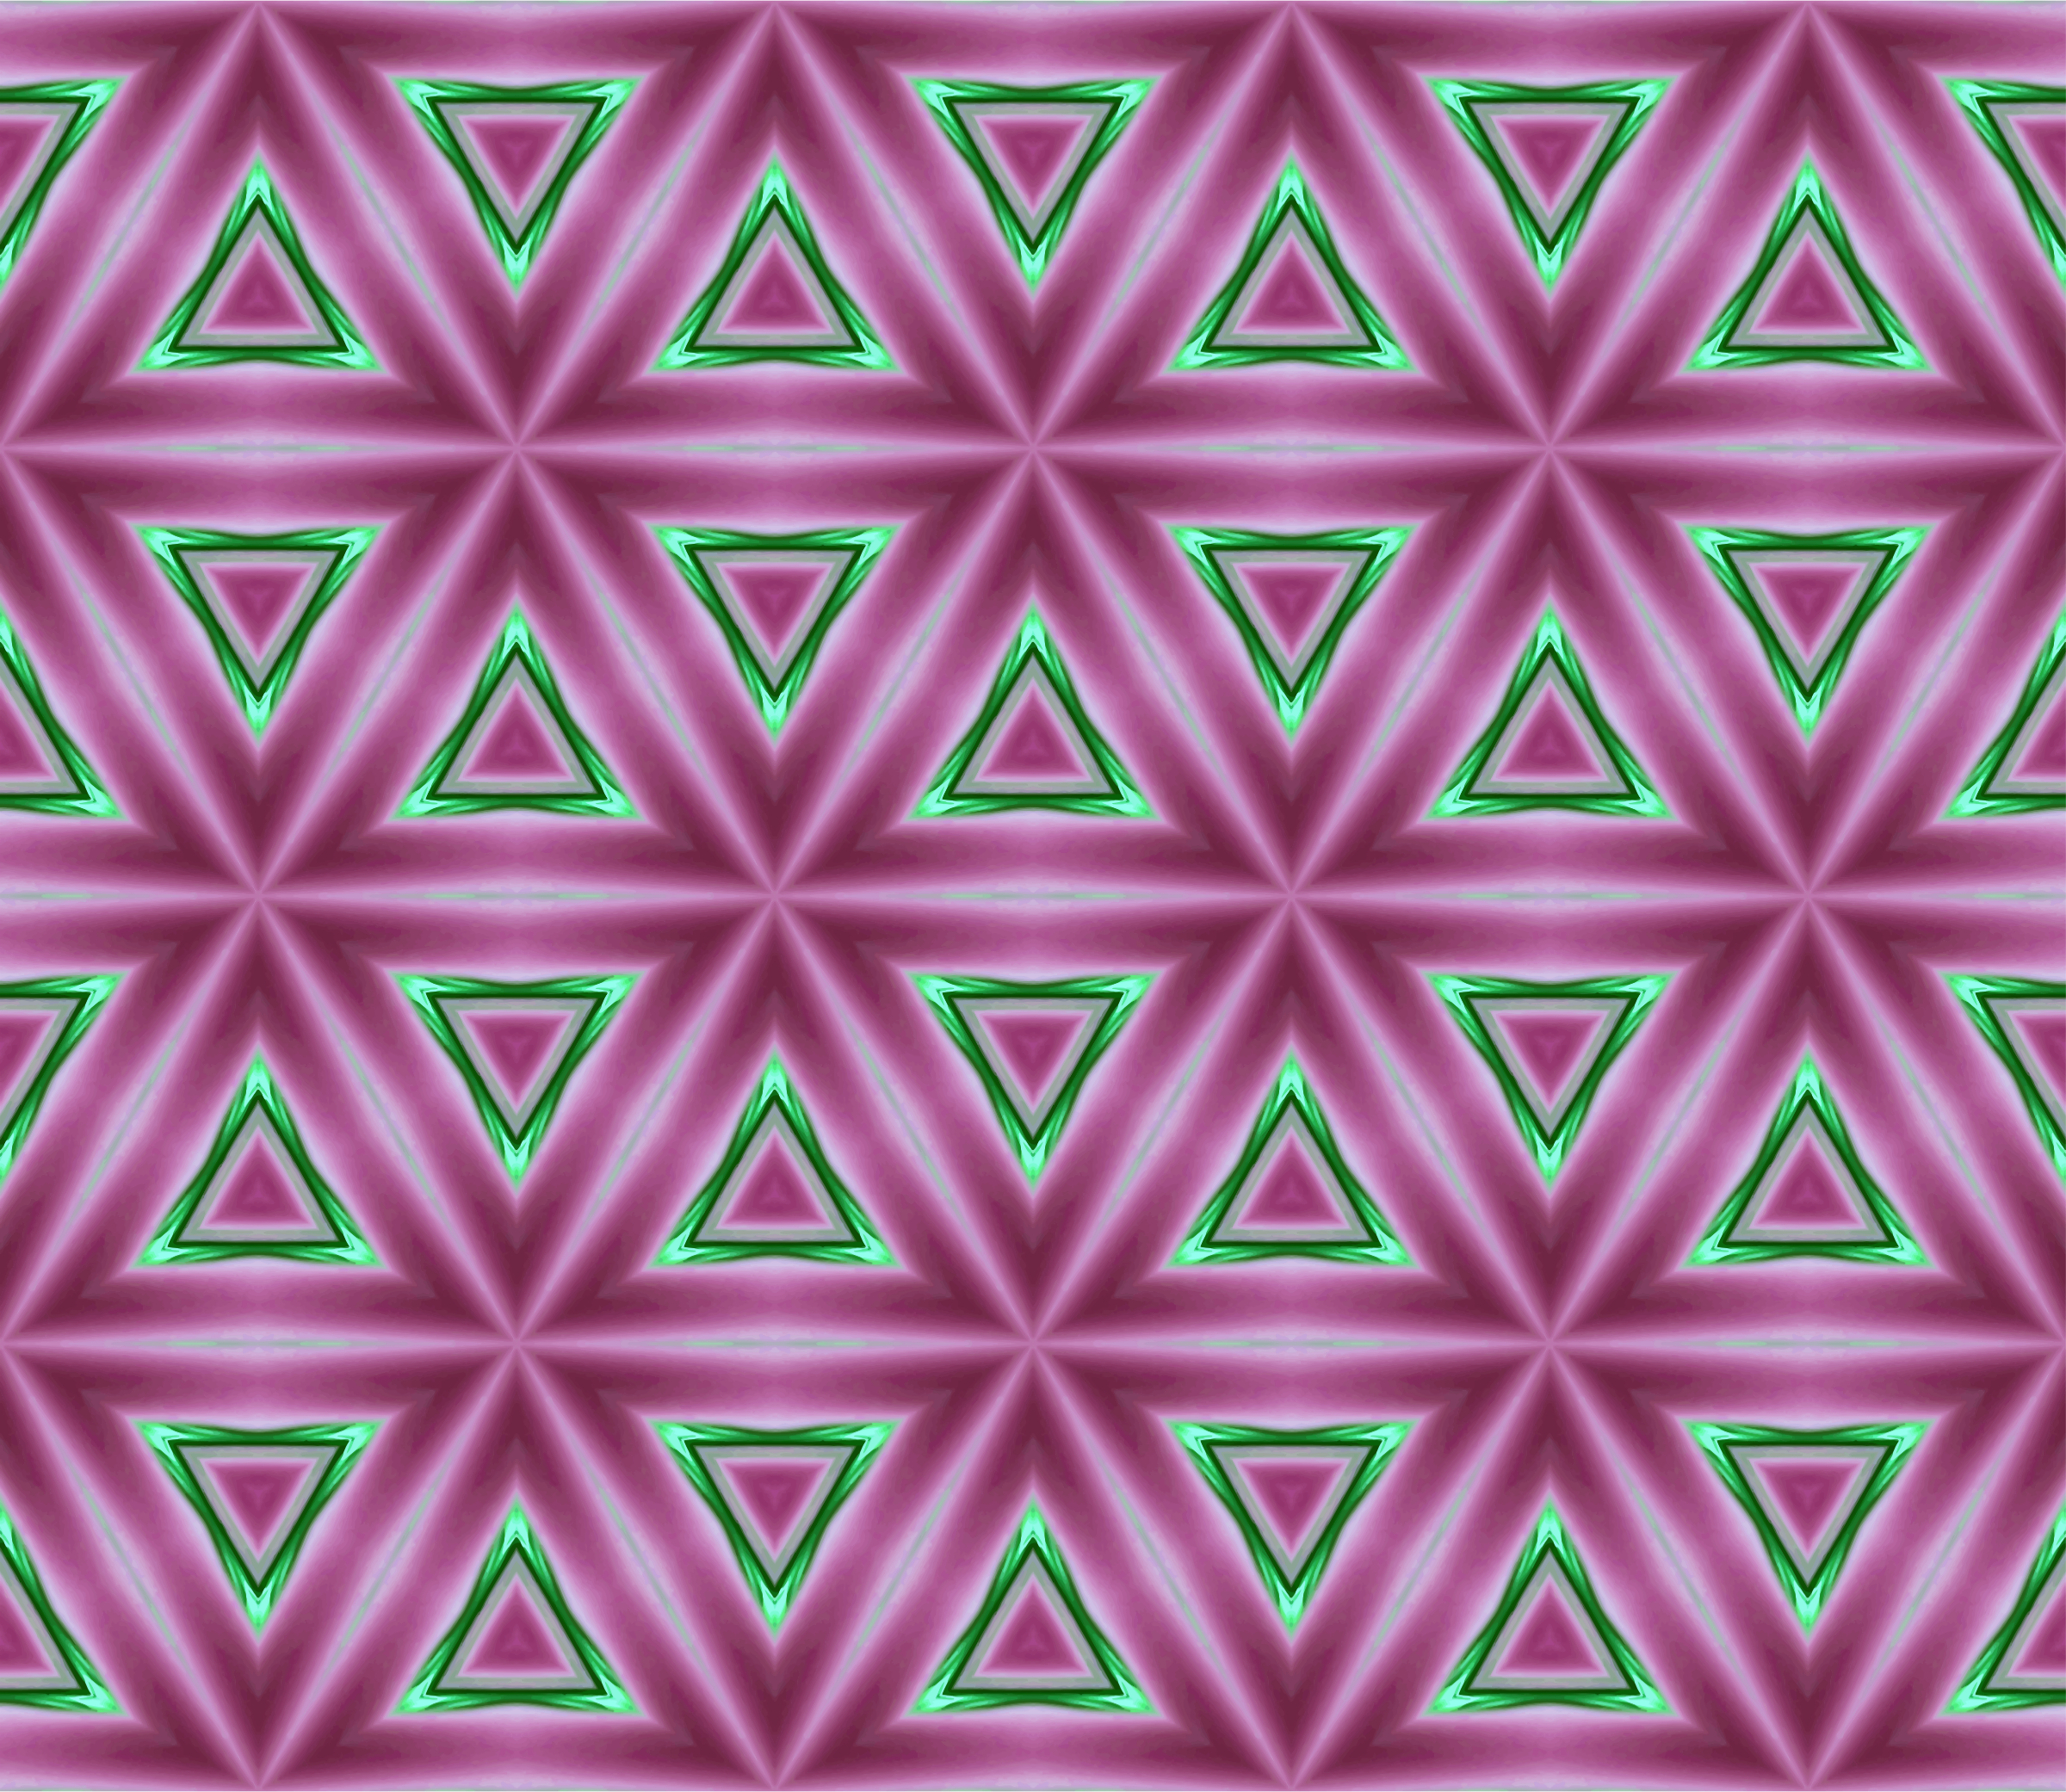 Background pattern 285 (colour 2) by Firkin